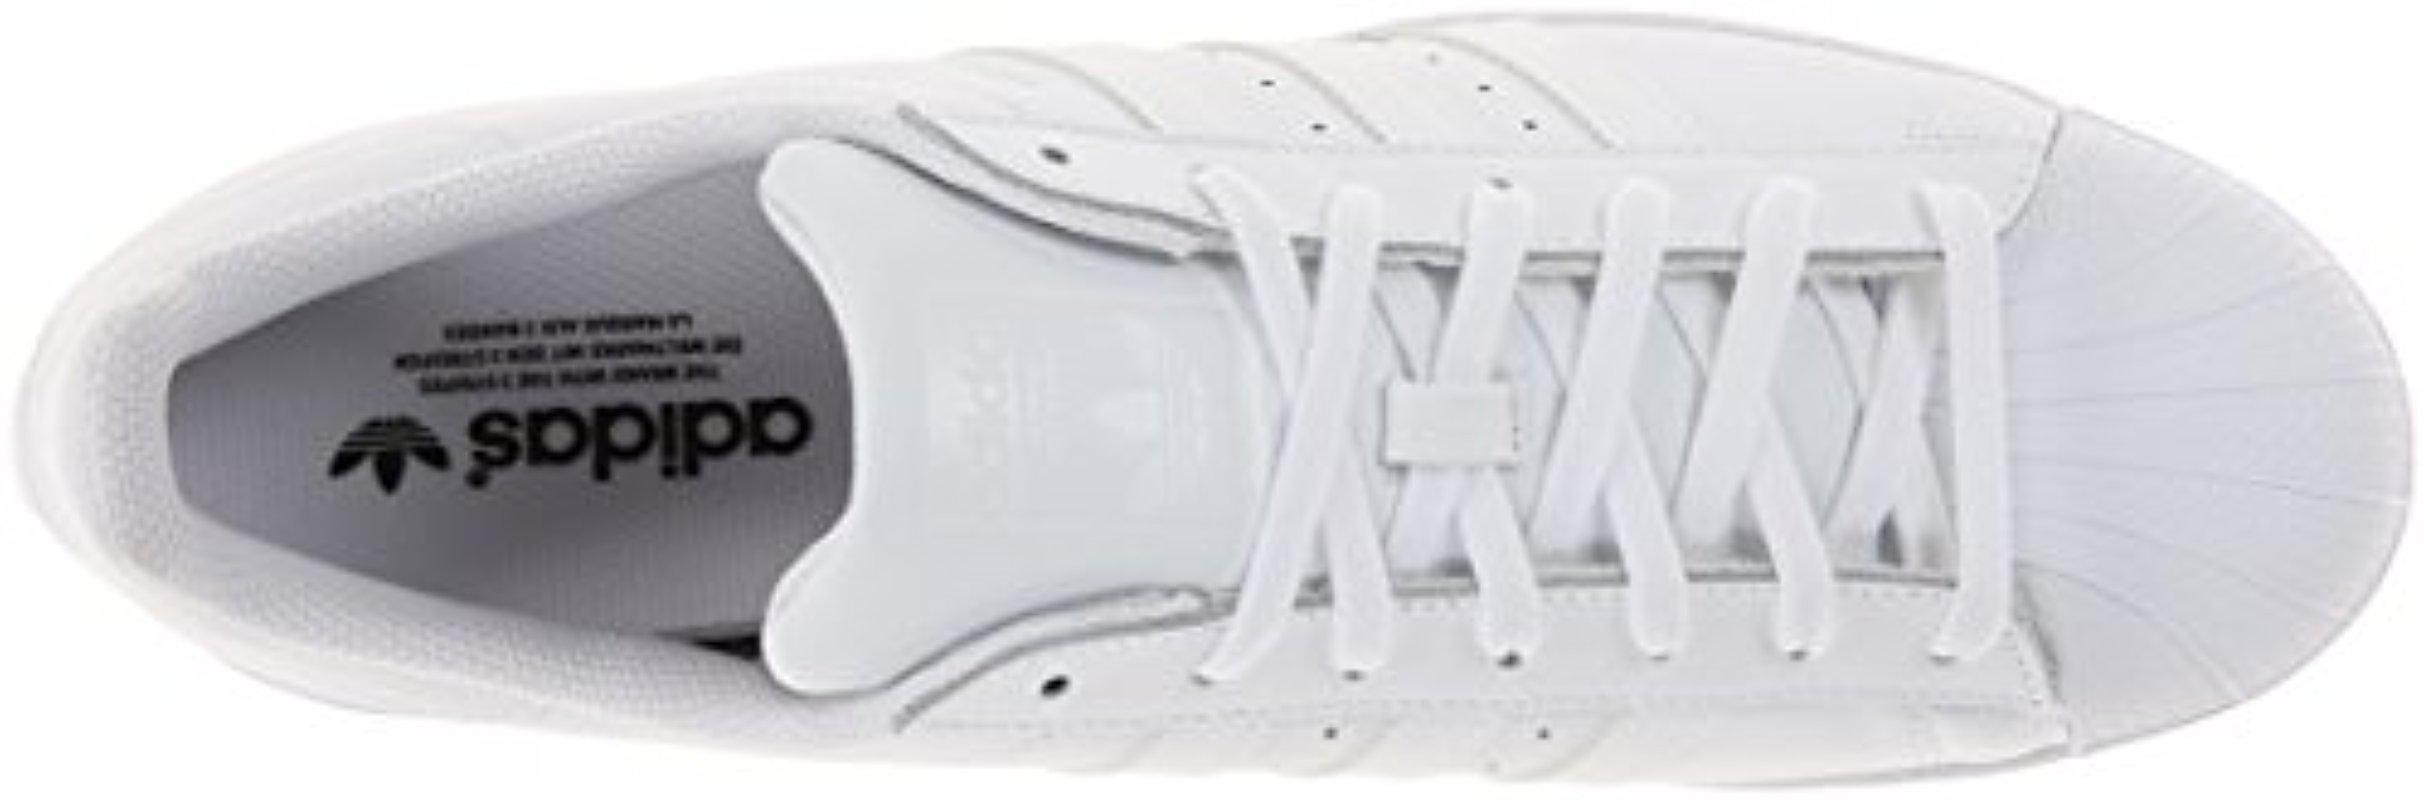 reputable site 3f0d6 6f97d Lyst - adidas Originals Superstar Foundation Casual Sneaker, White ...